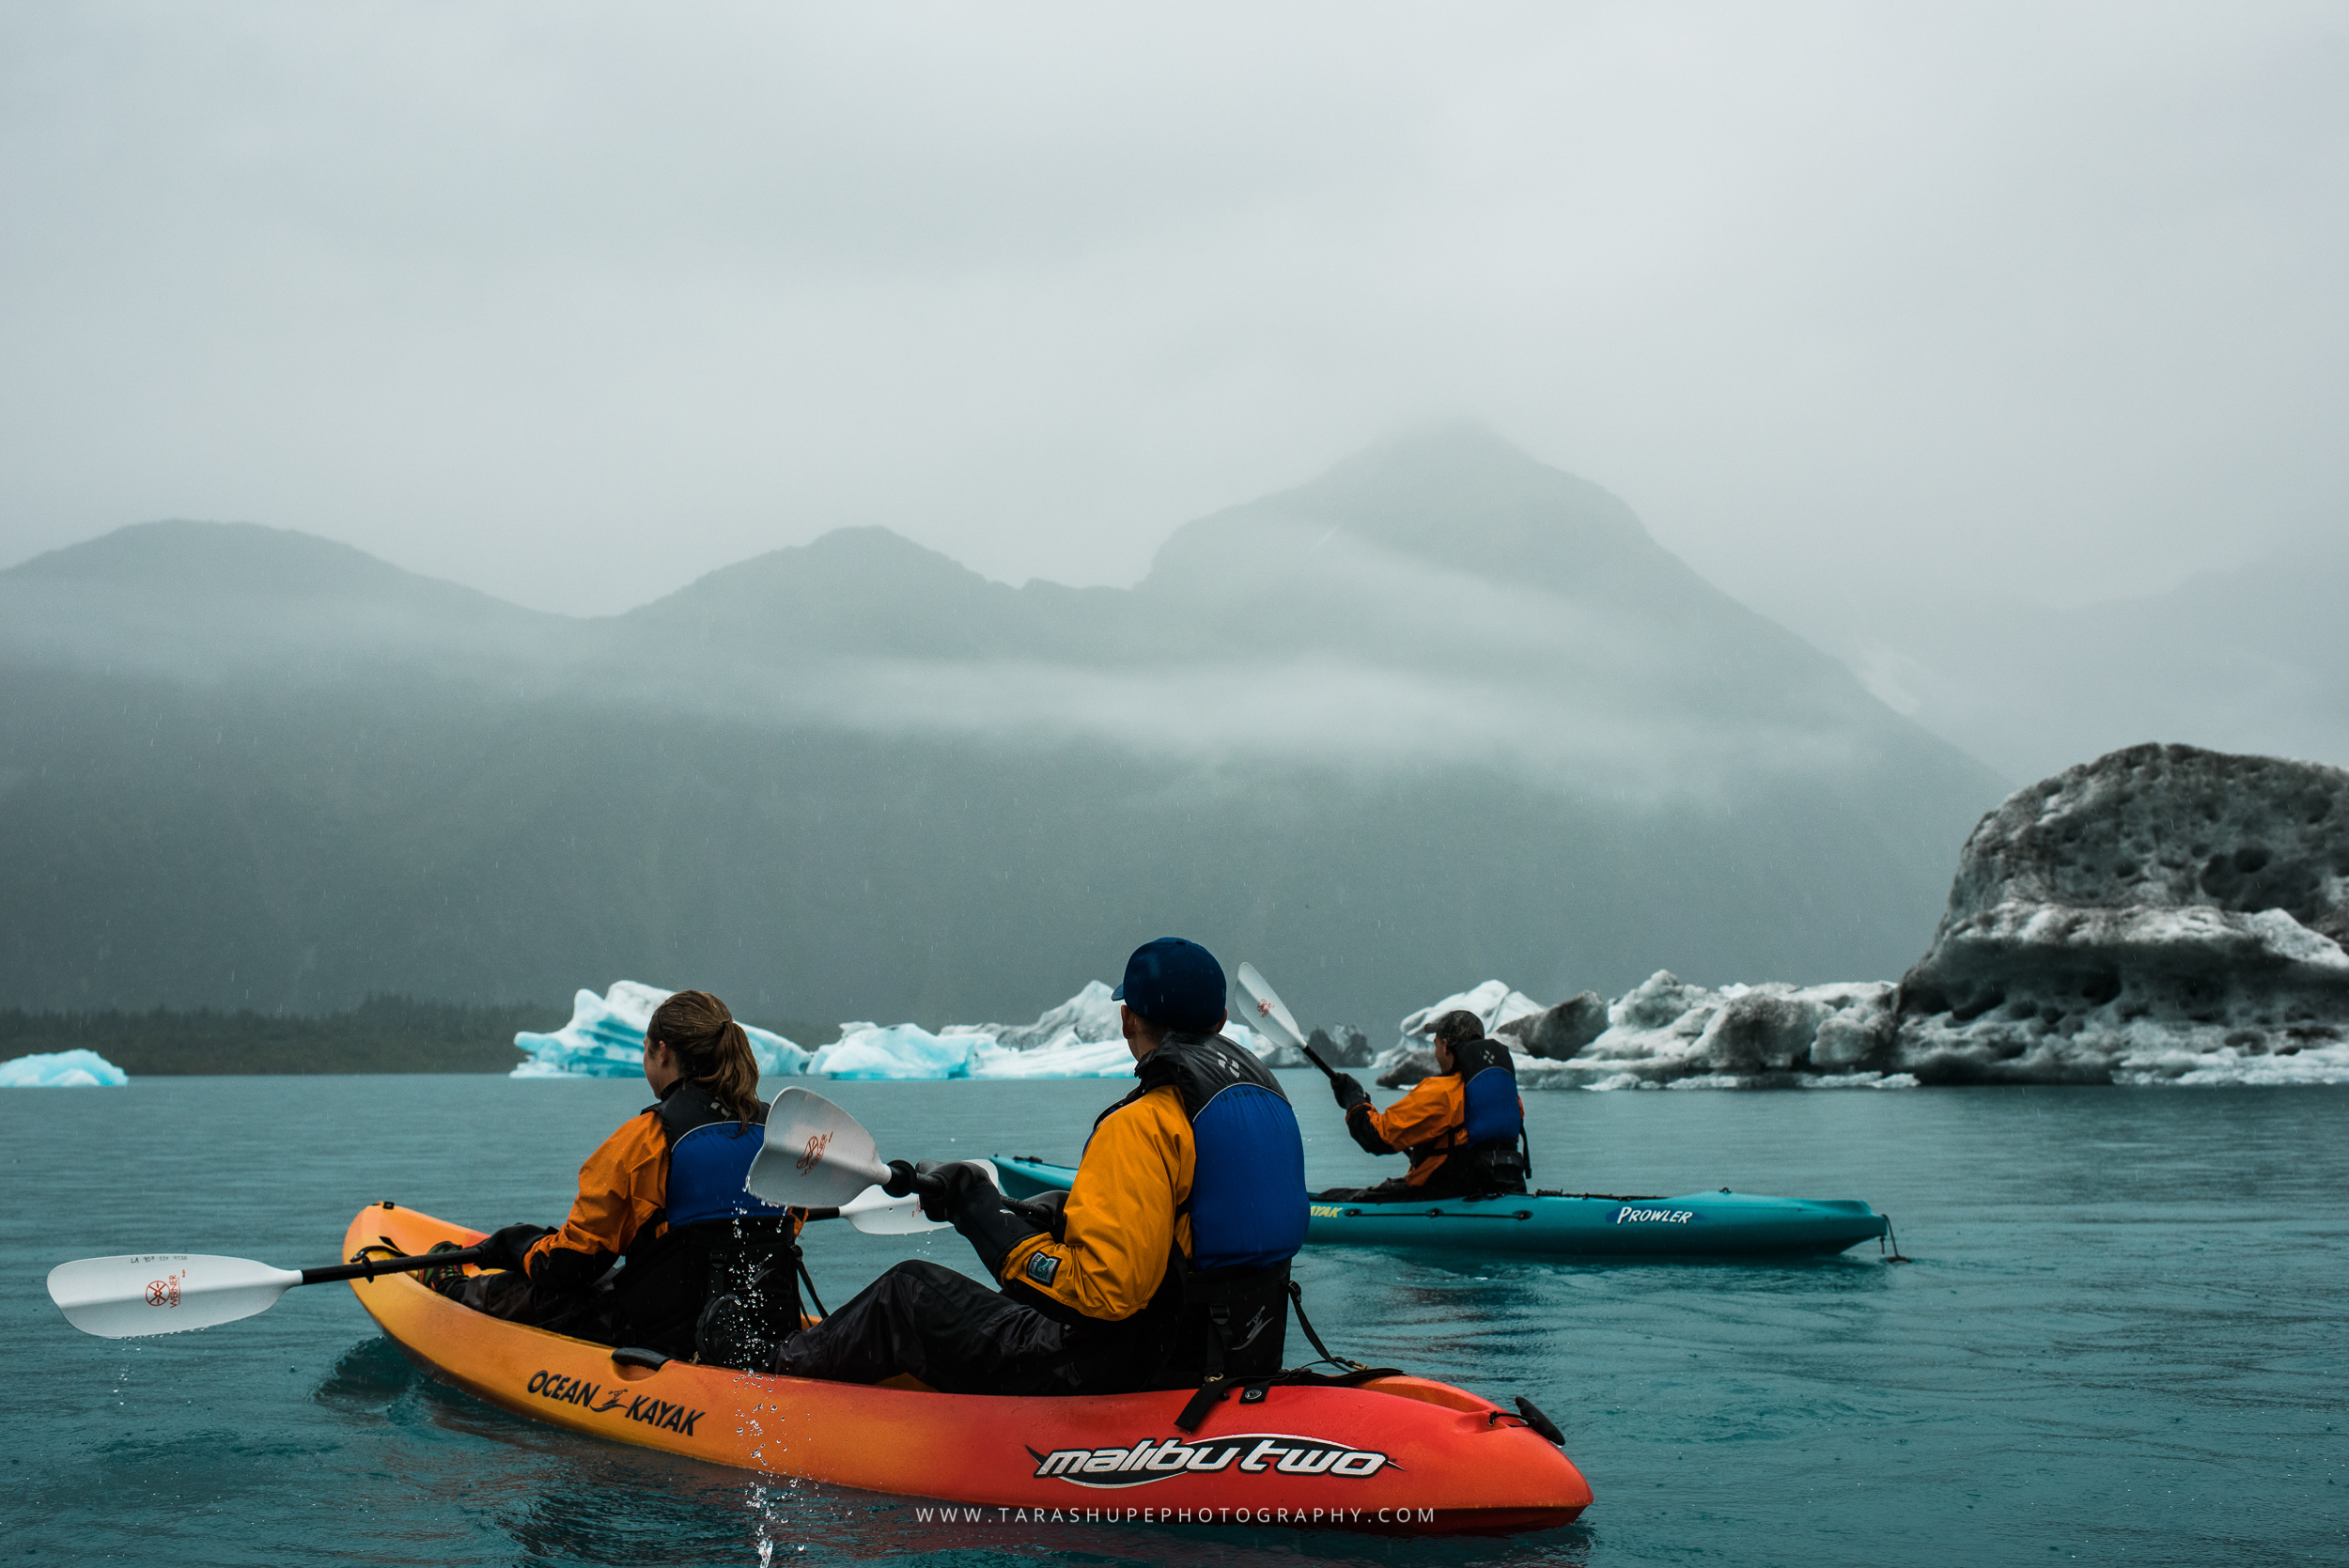 ALASKA_TaraShupe_Outdoor_Adventure_DSC_4525.jpg